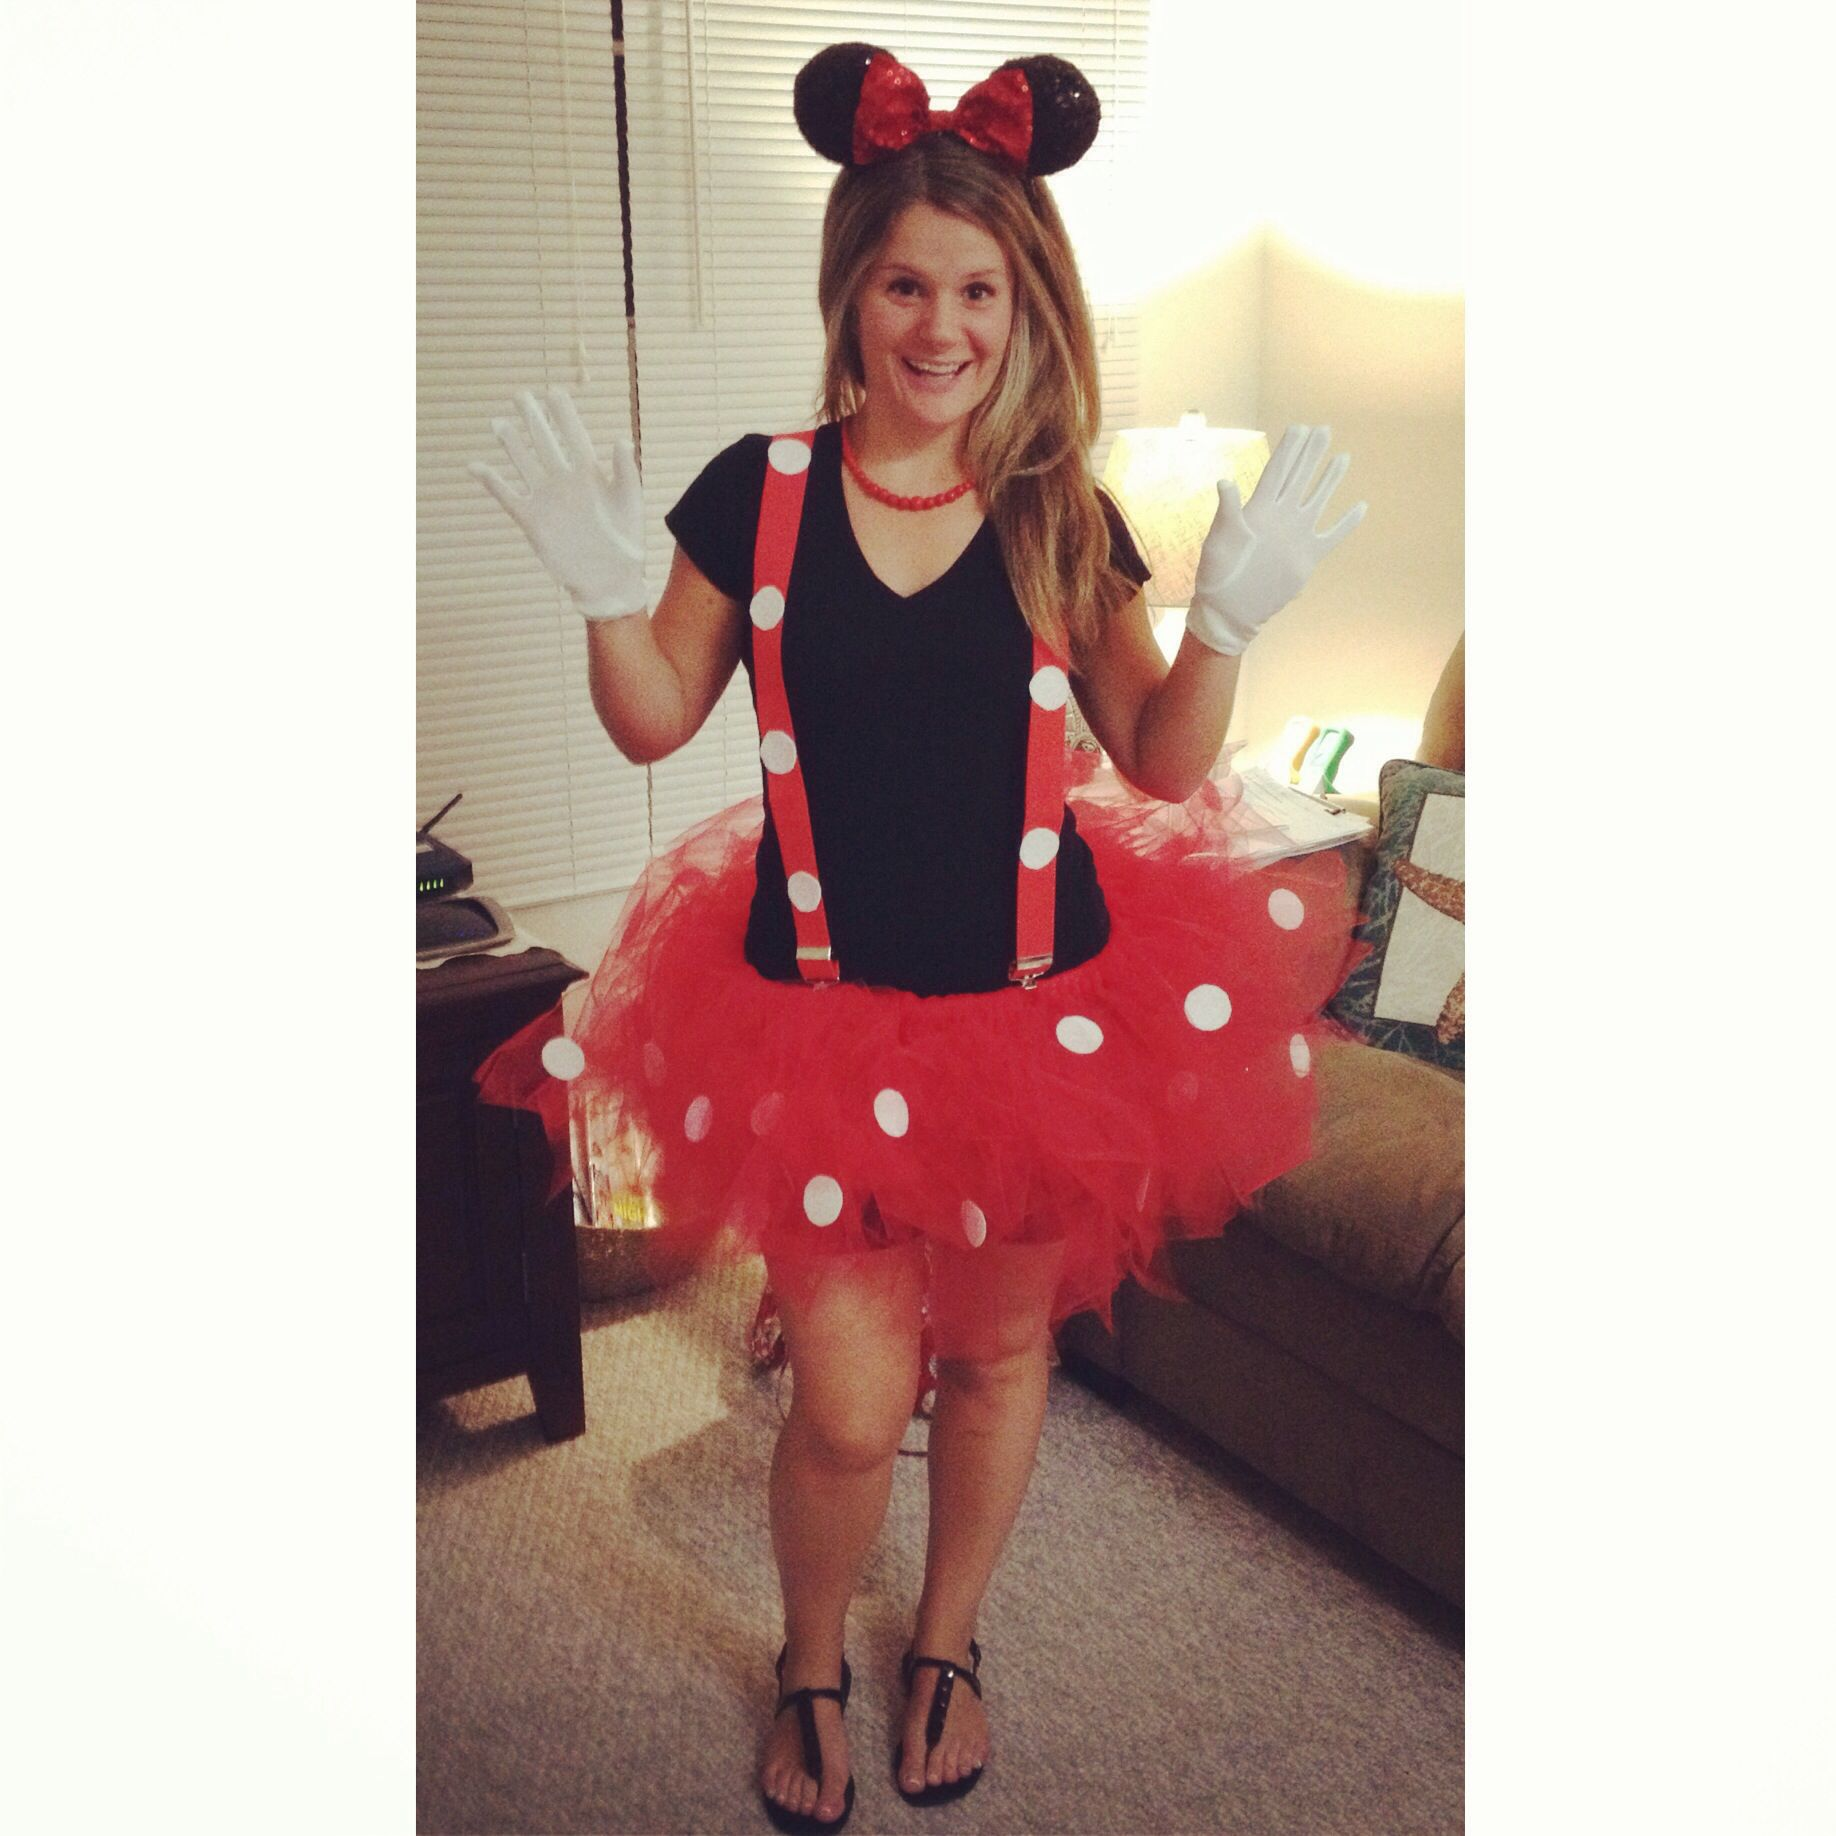 Diy minnie mouse costume for a woman diy pinterest for Diy halloween costumes for adult women